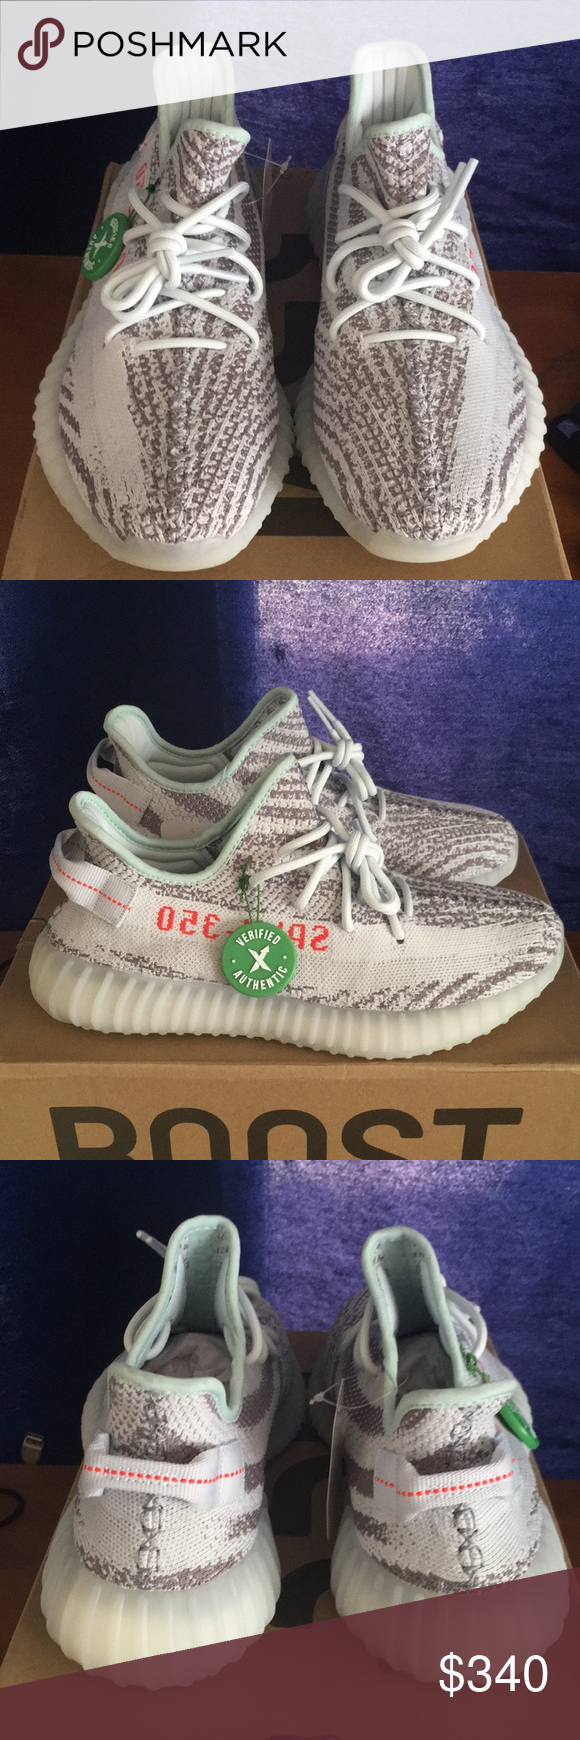 bbfabf2f Adidas Yeezy Boost 350 Blue Tint Size 9 New , comes with receipt and stockX  verification card. Where only tried on, Don't fit me. Yeezy Shoes Sneakers